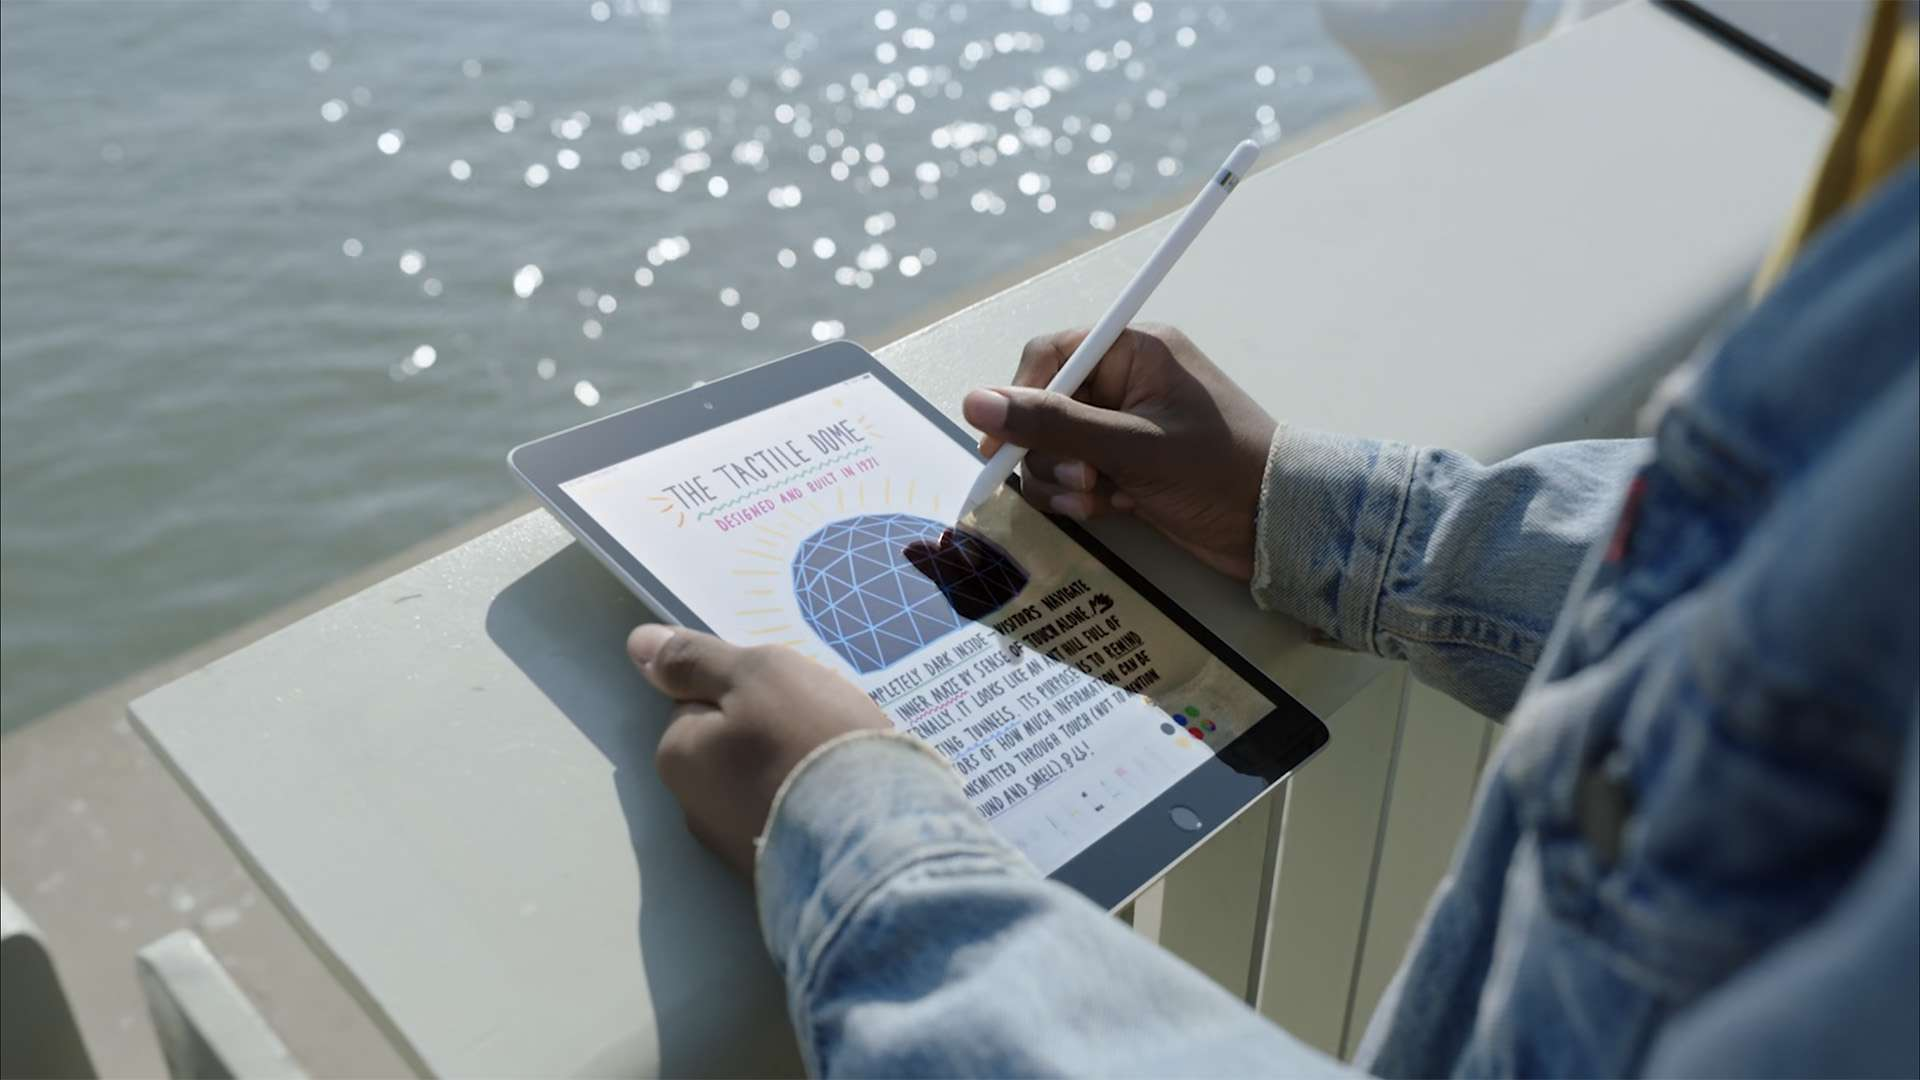 New Apple iPad with A13 chip being used on a balcony